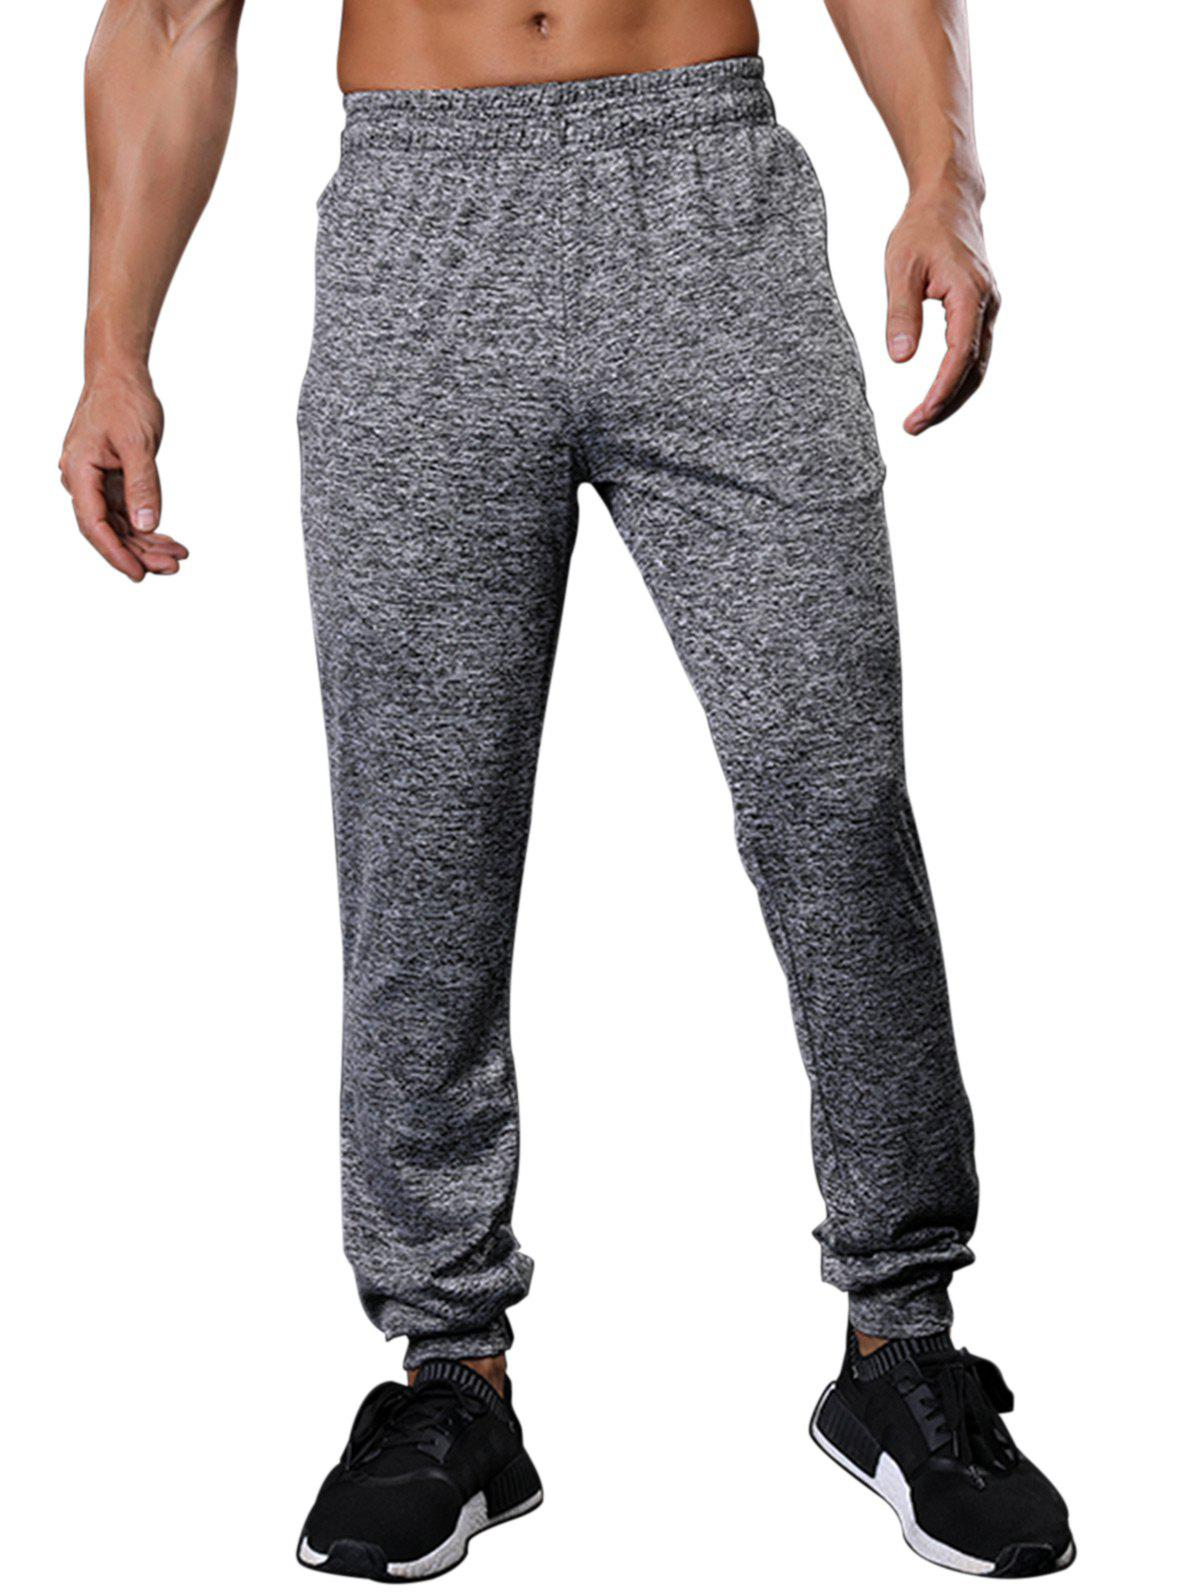 Zipper Pockets Drawstring Beam Feet Stretchy Gym PantsMEN<br><br>Size: M; Color: GRAY; Type: Pants; Material: Polyester,Spandex; Pattern Type: Solid; Weight: 0.2920kg; Package Contents: 1 x Pants;